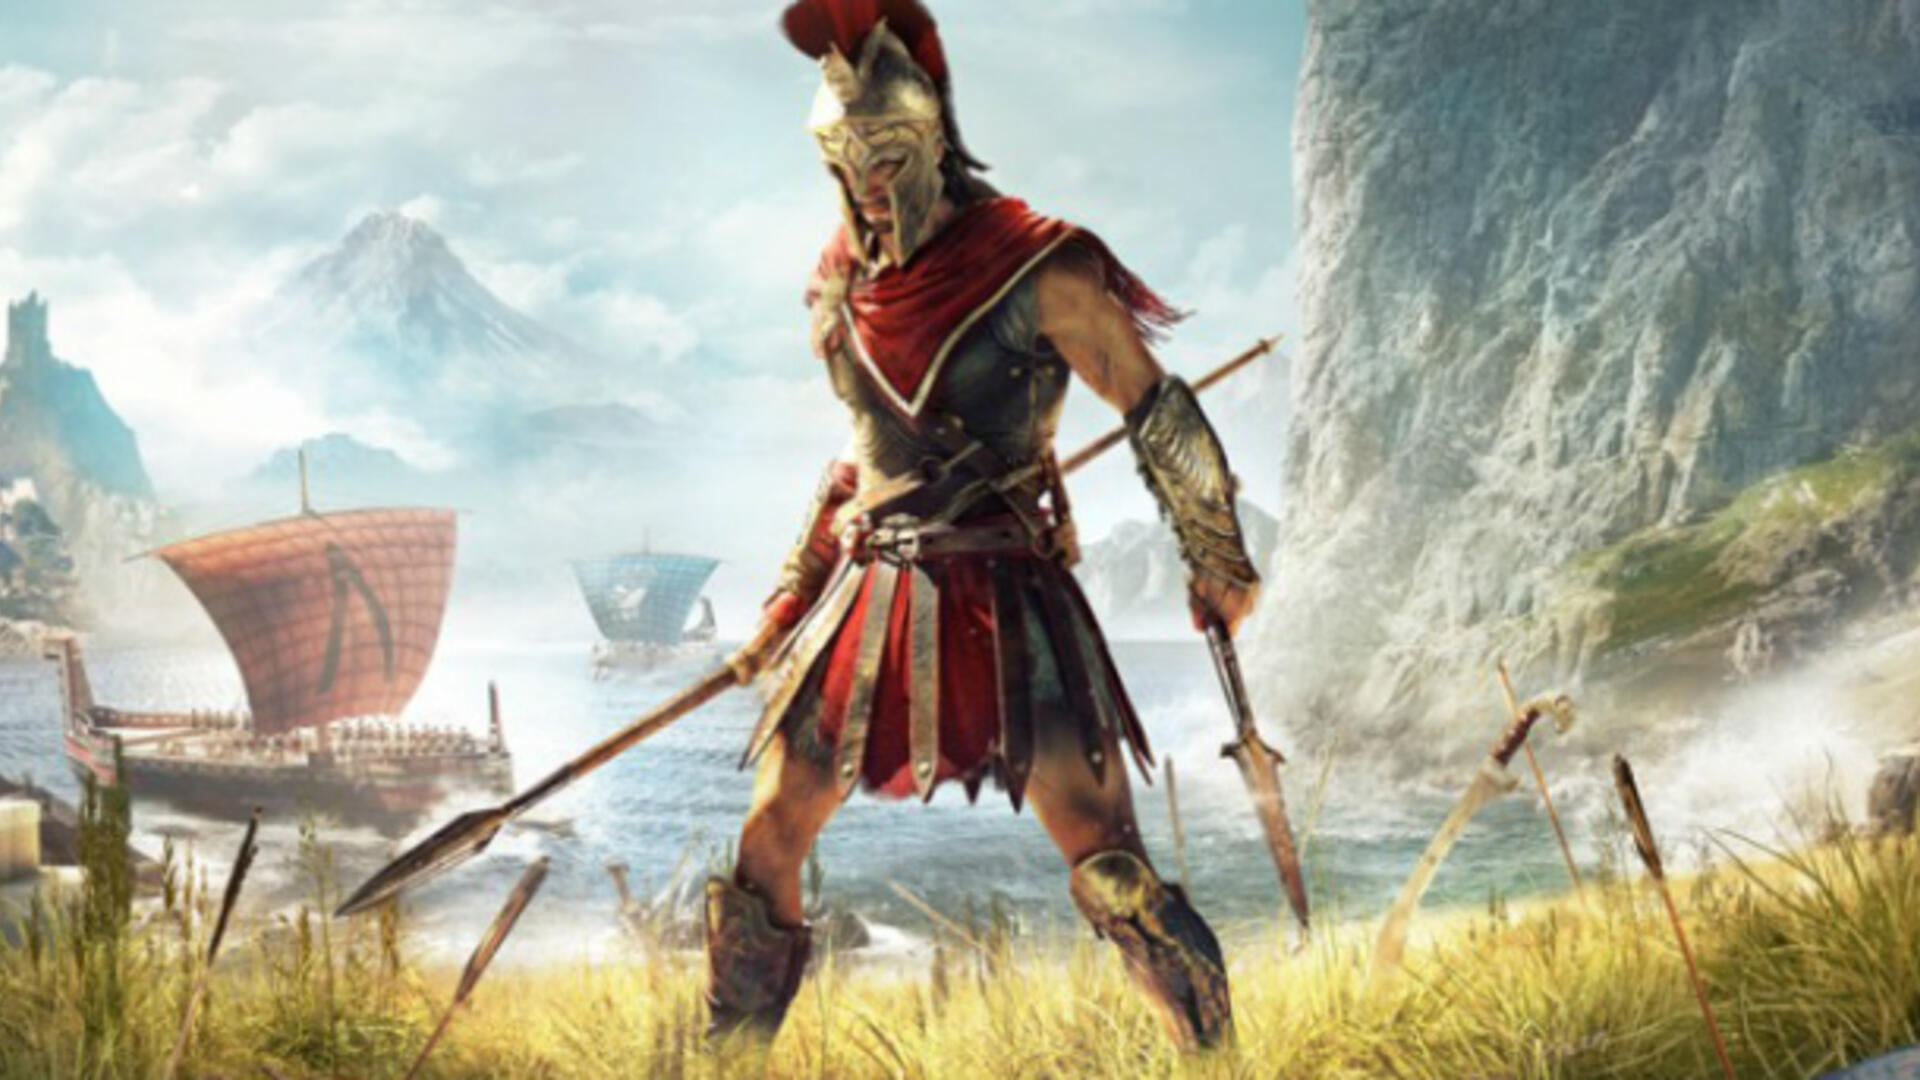 Here's 16 Minutes of Assassin's Creed Odyssey 4K Gameplay